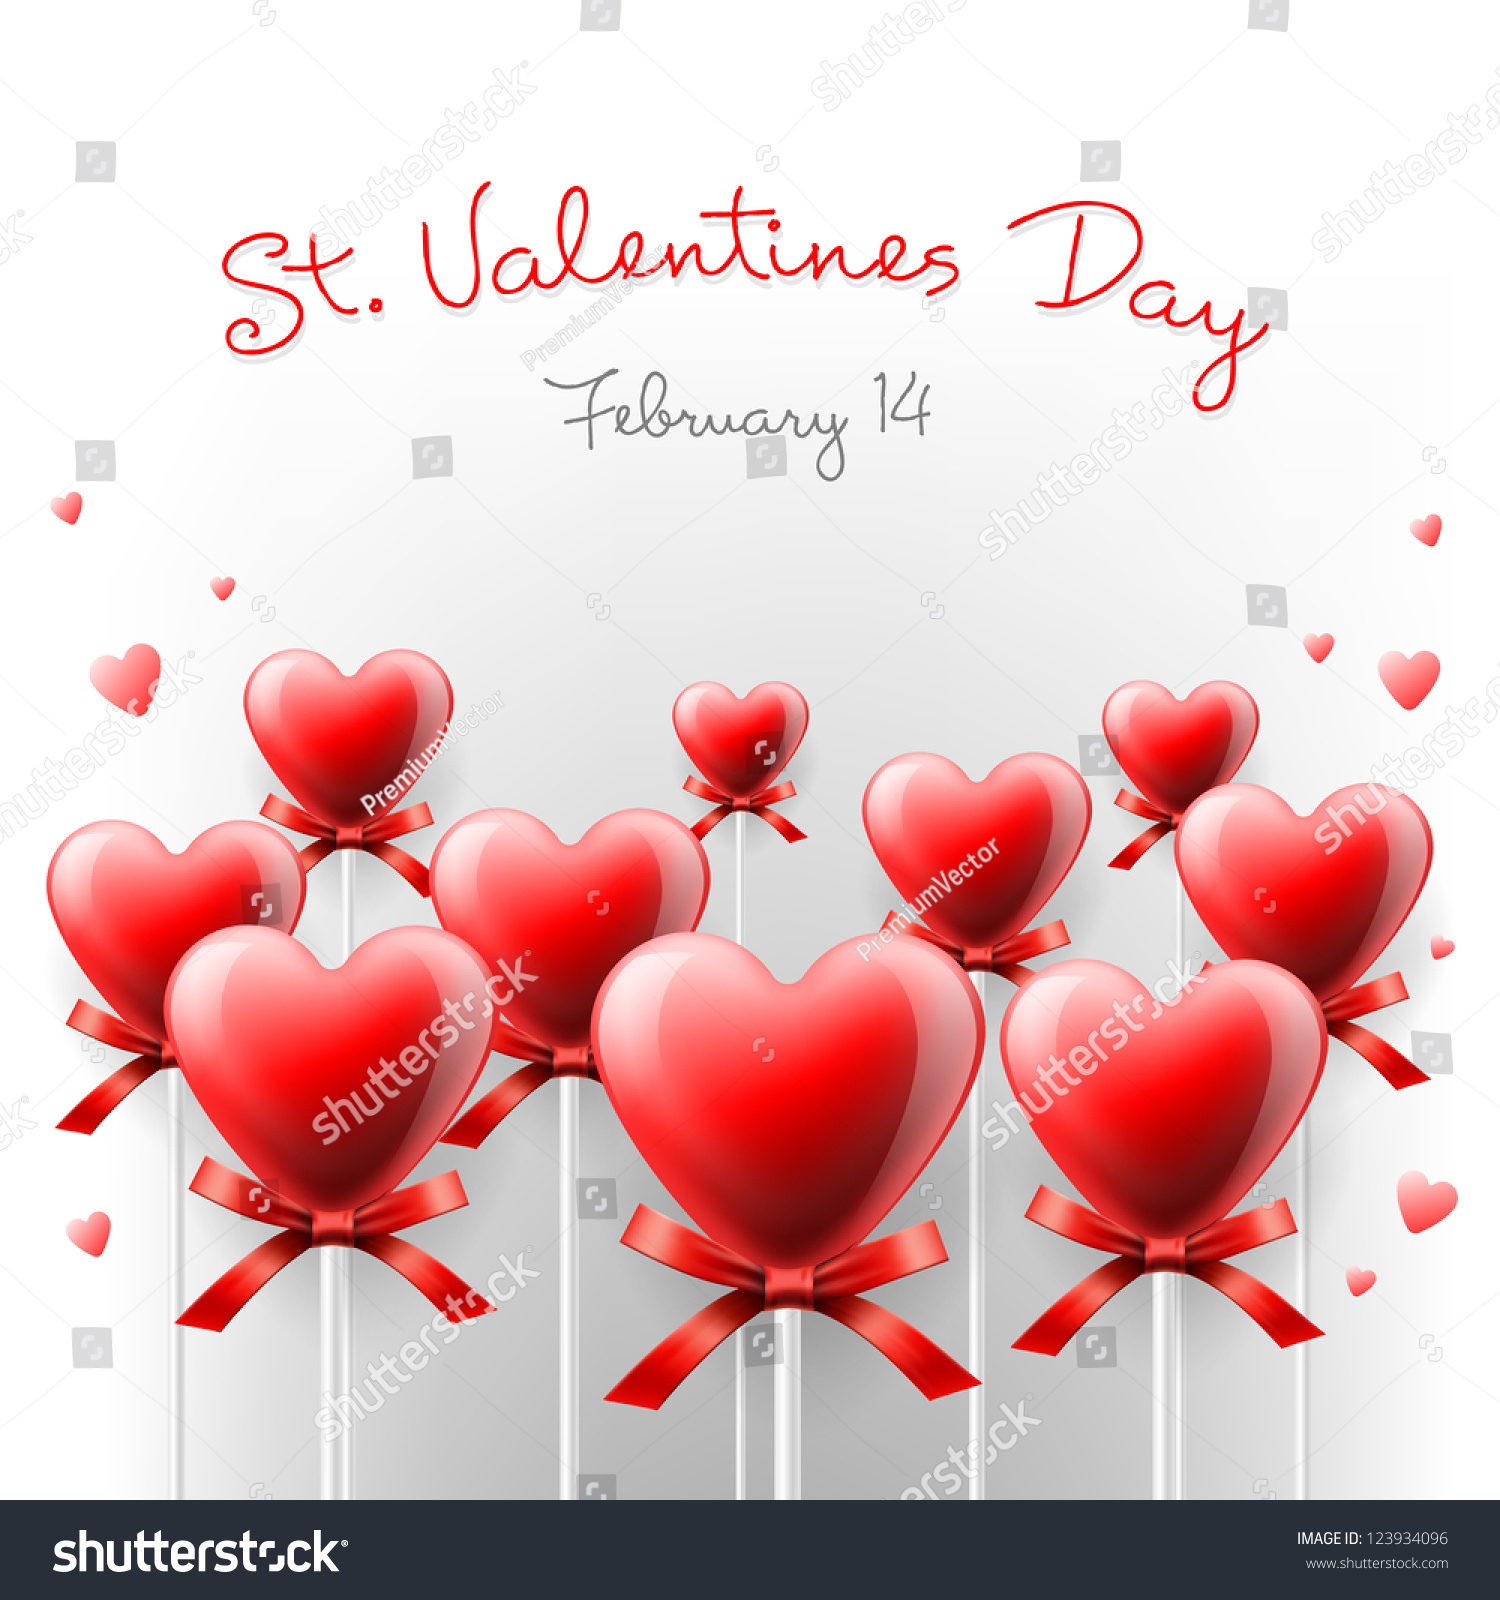 valentines day card with lollipops heart shaped - Valentine Lollipops